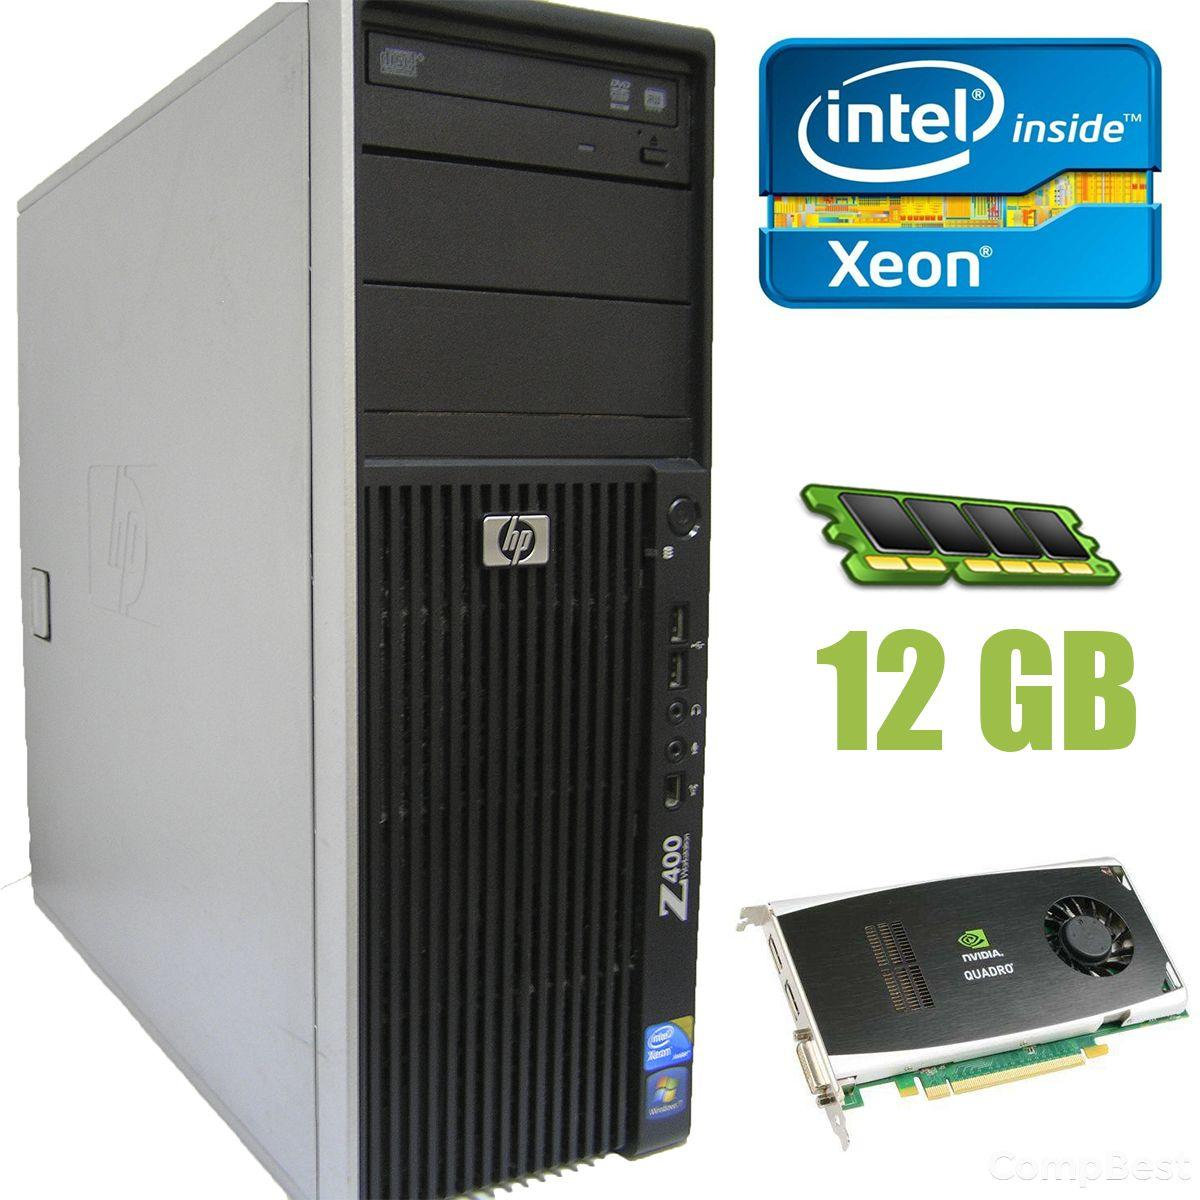 HP Workstation Z400 / Intel Xeon E5540 (4(8) ядра по 2.53-2.8GHz) / 12GB DDR3 / 160GB HDD, 10'000 RPM  / NVIDIA Quadro FX 1800 192-bit / DVD-RW / БП